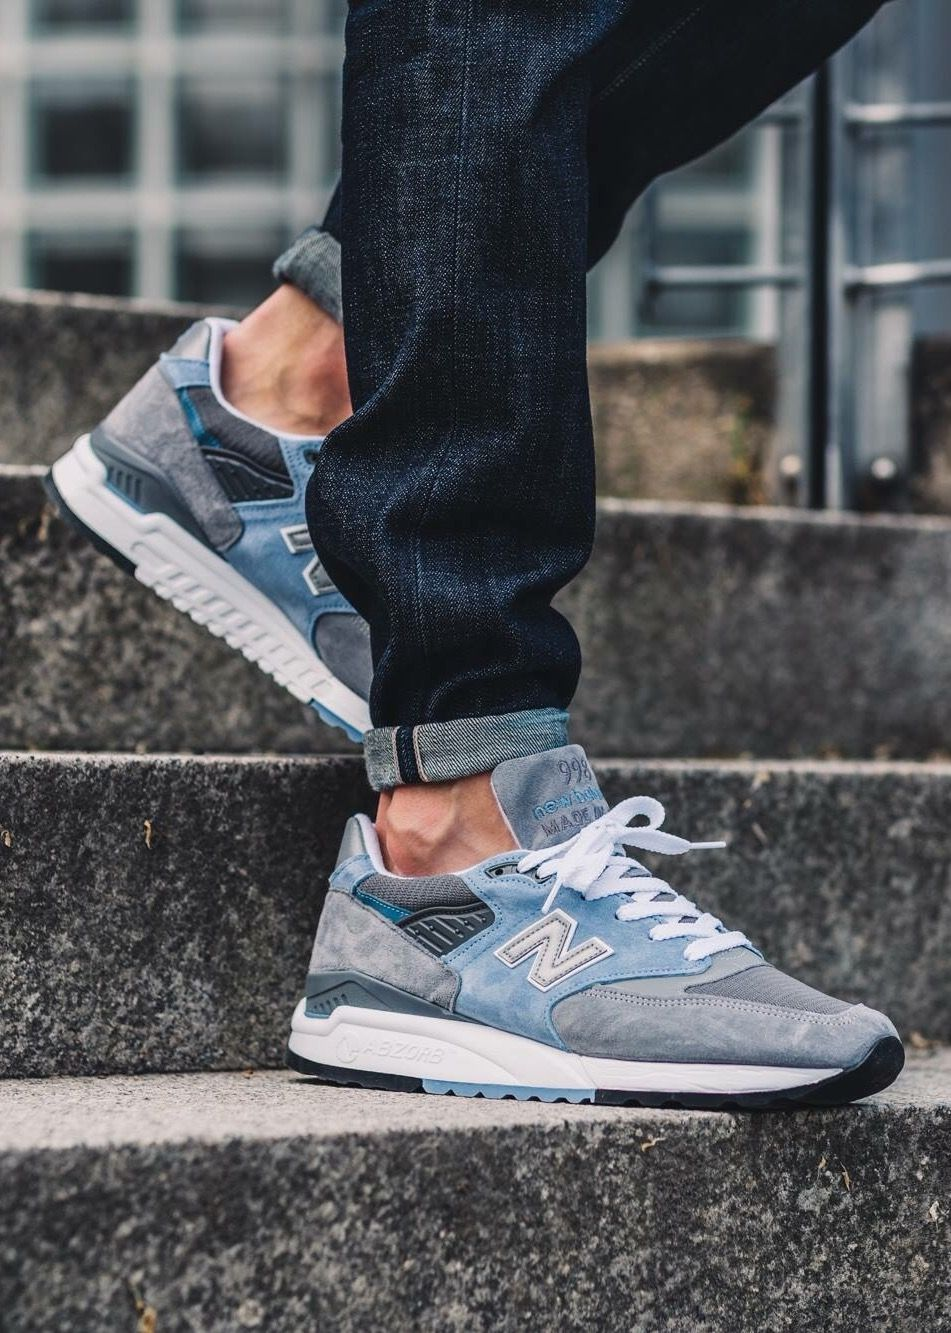 separation shoes 601b8 79b74 New Balance 998 | Sneakers in 2019 | Mens fashion shoes, New ...